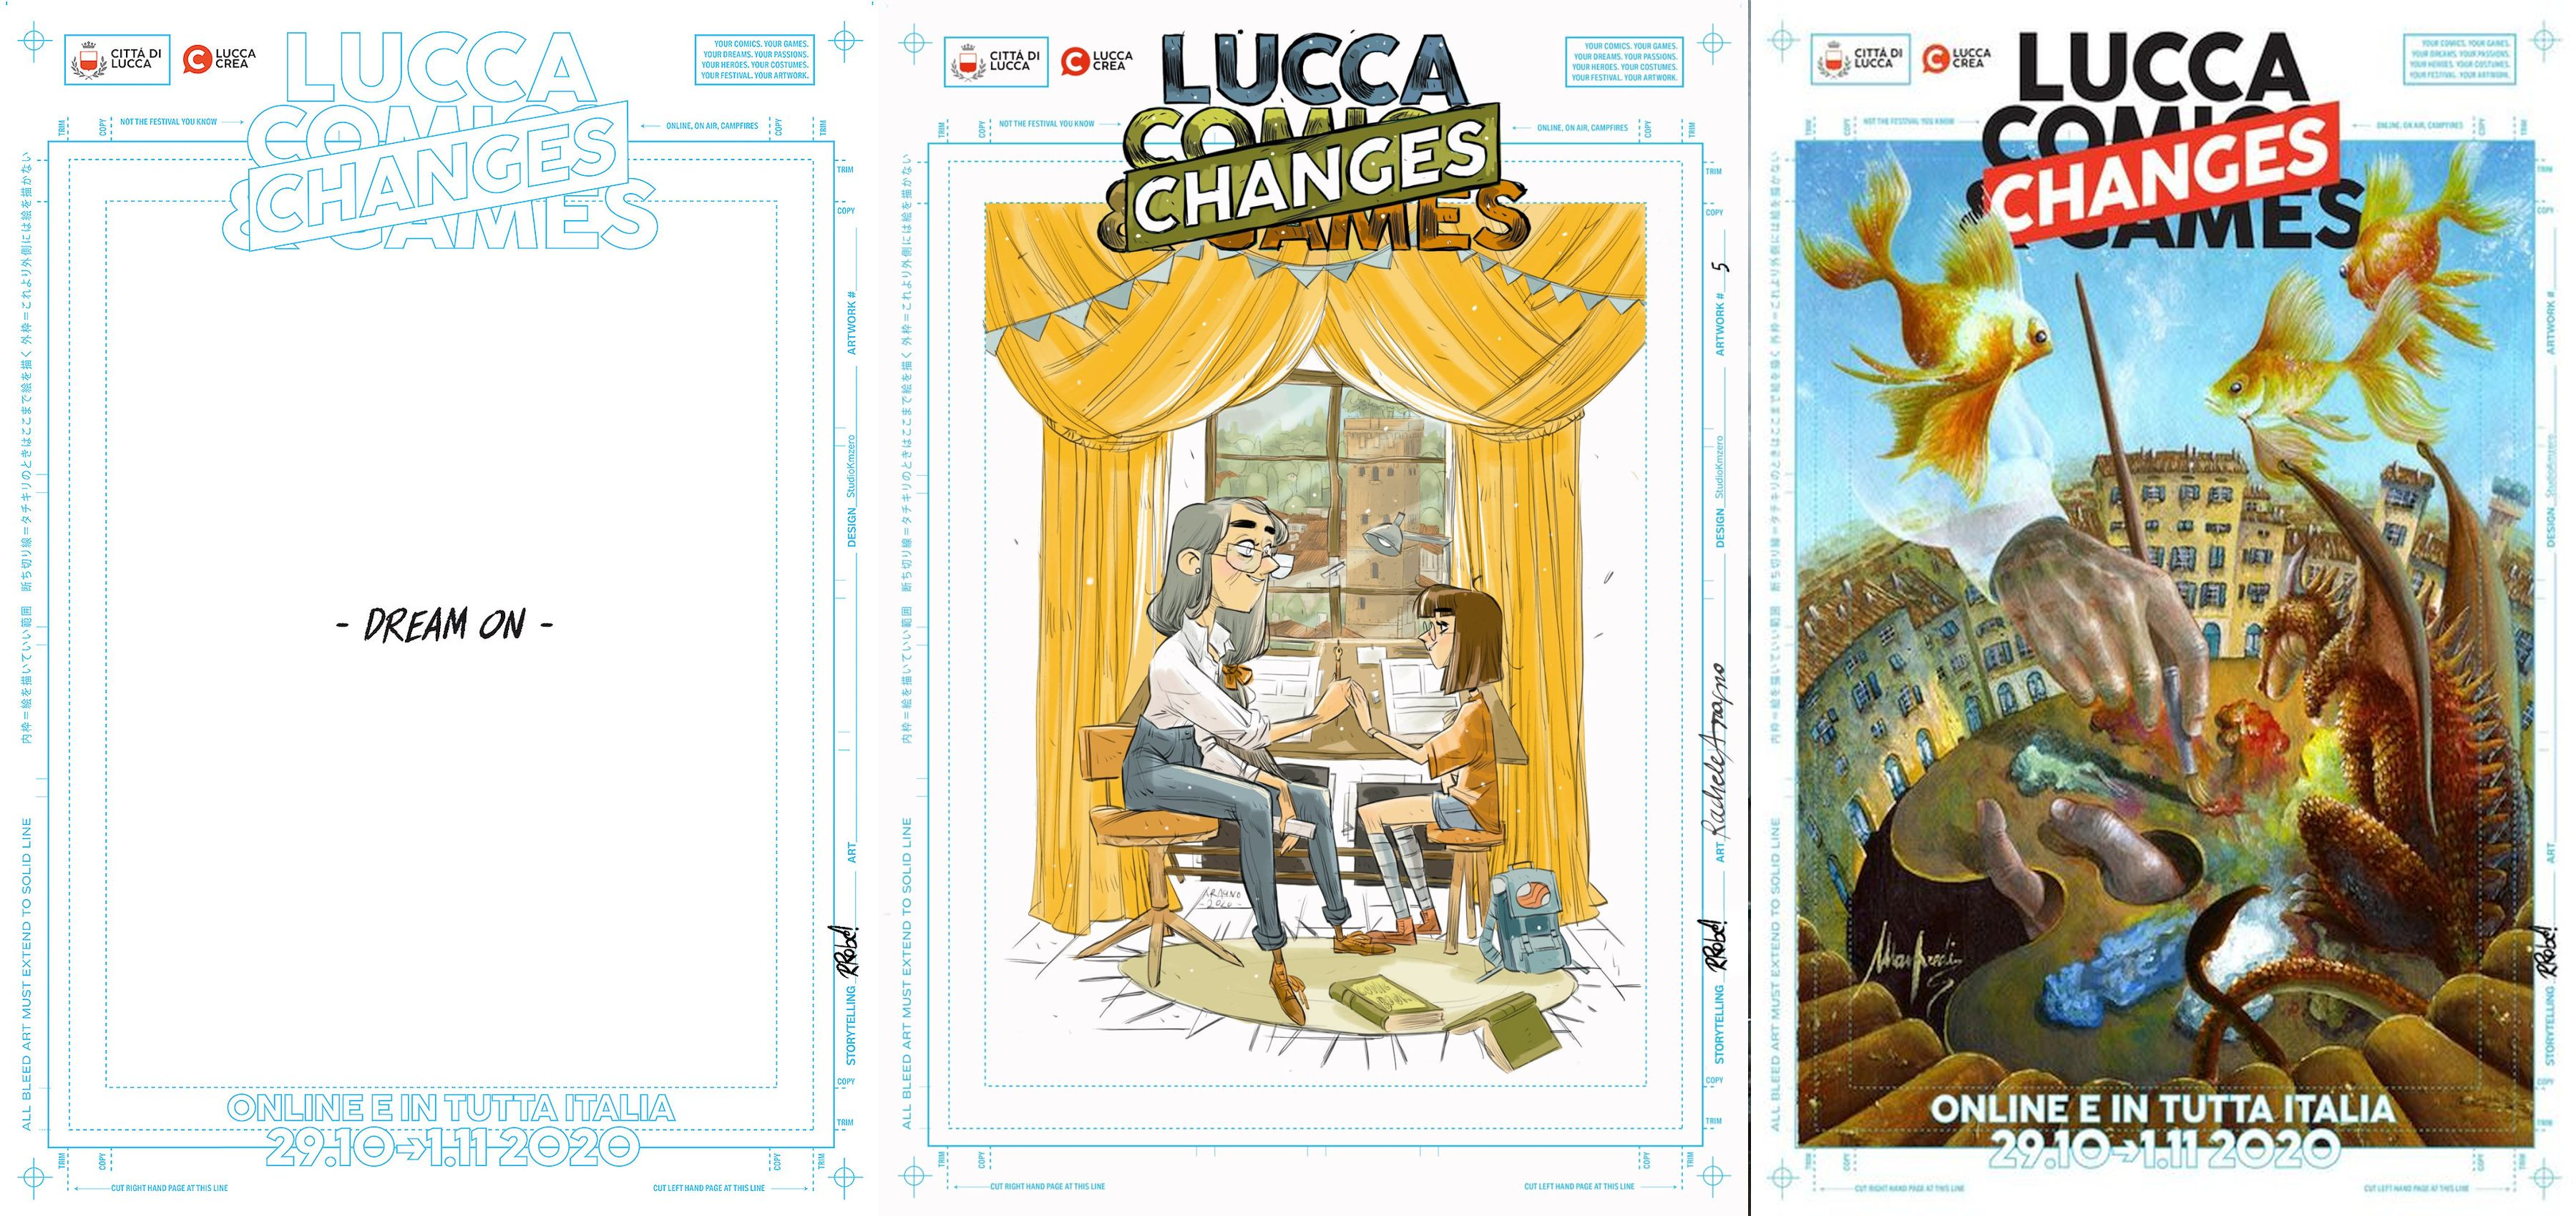 lucca comics and games 2020 poster